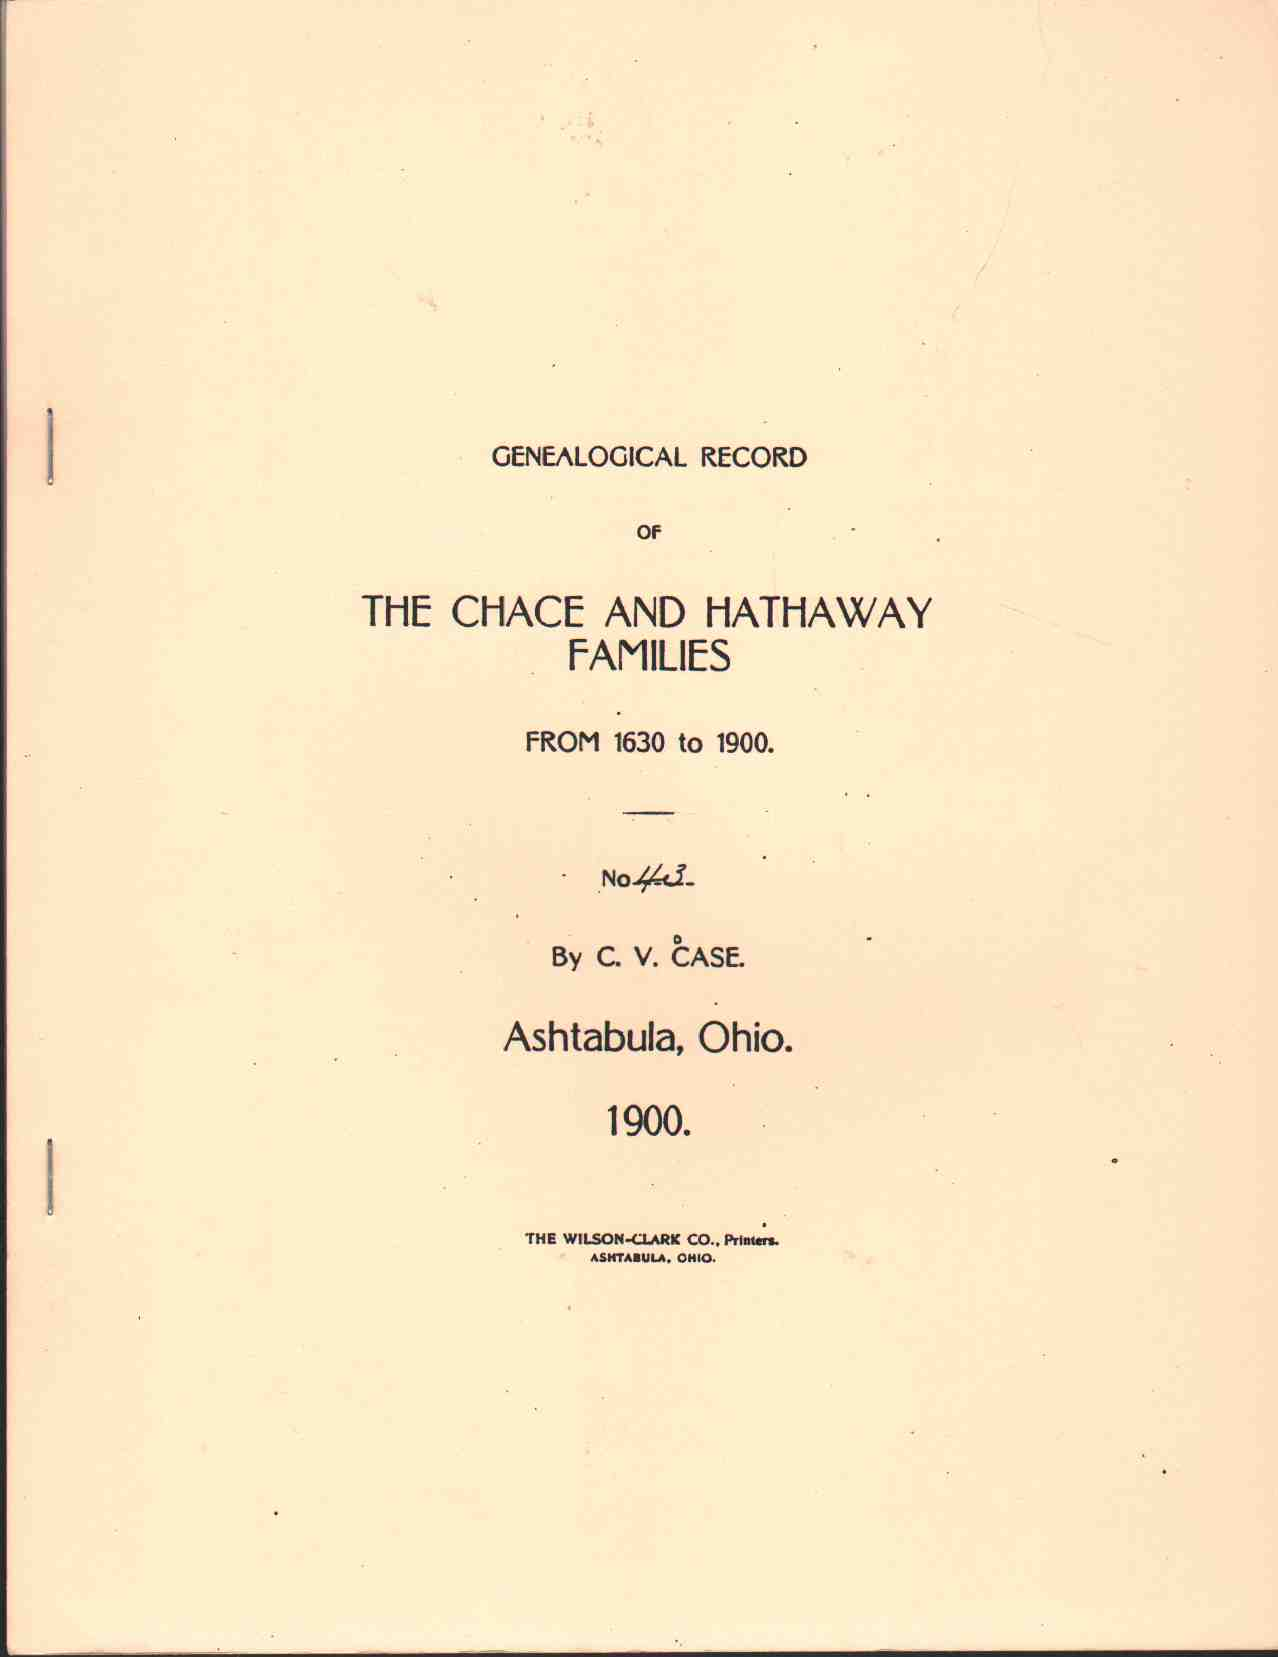 GENEALOGICAL RECORD OF THE CHACE AND HATHAWAY FAMILIES FROM 1630 TO 1900, Case, Clarence Vallierre